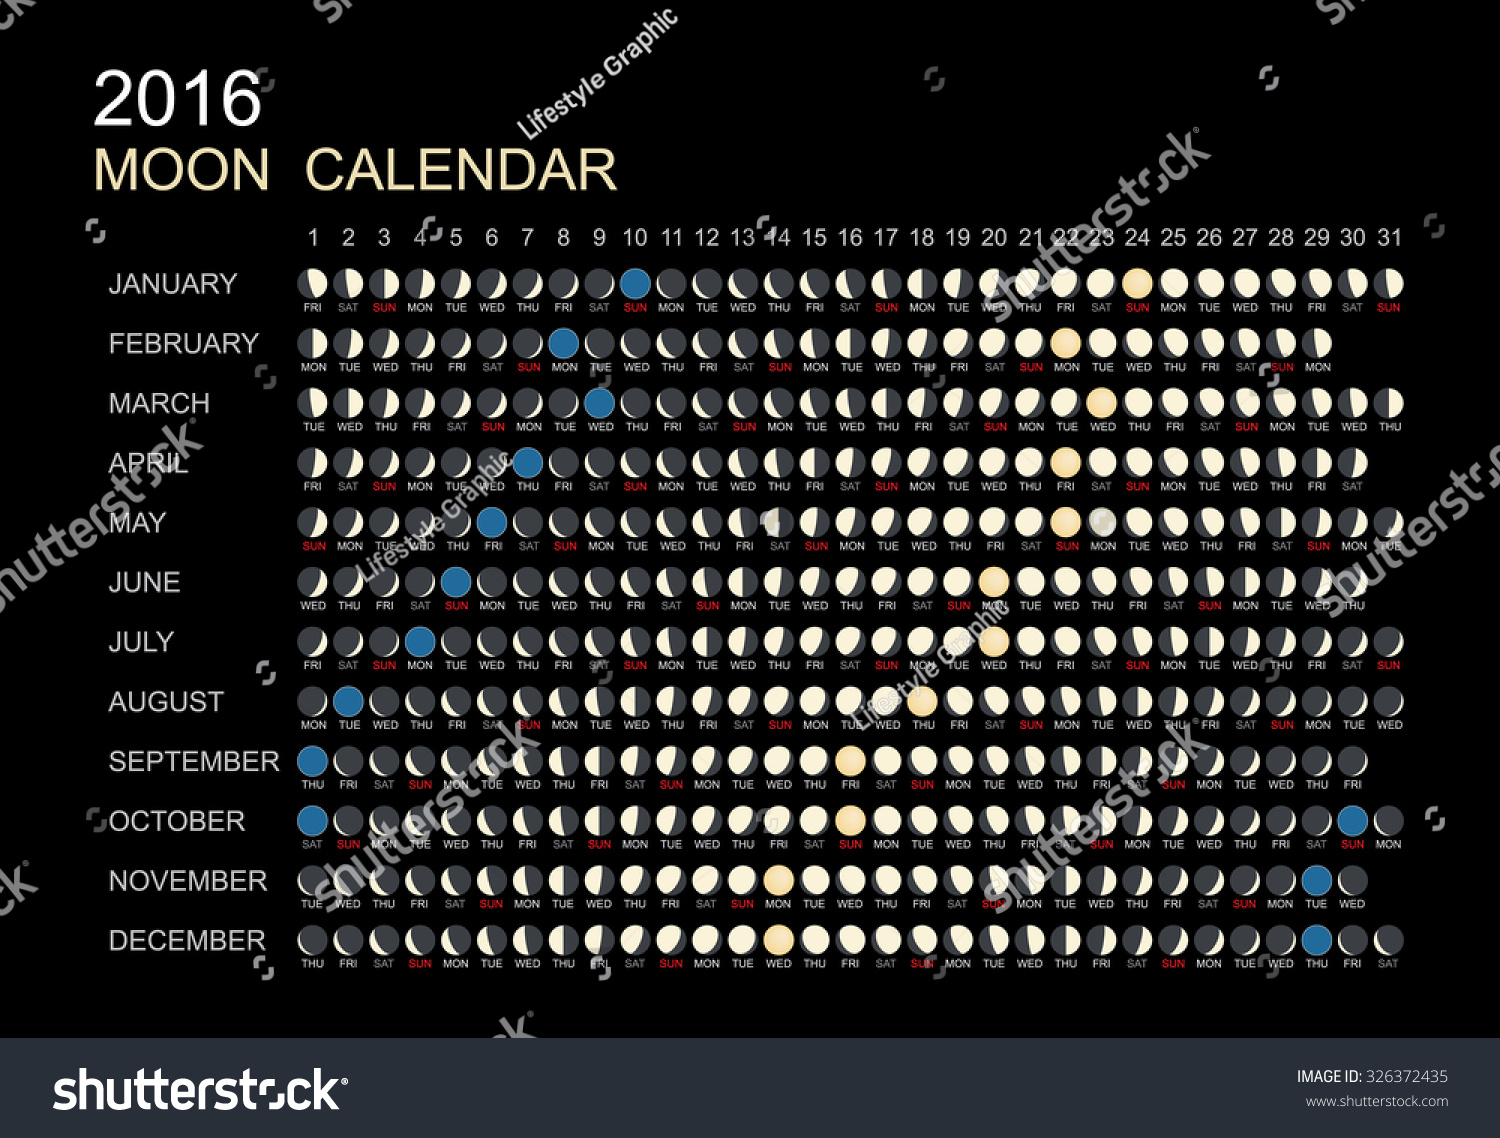 Gregorian-Lunar Calendar Conversion Table